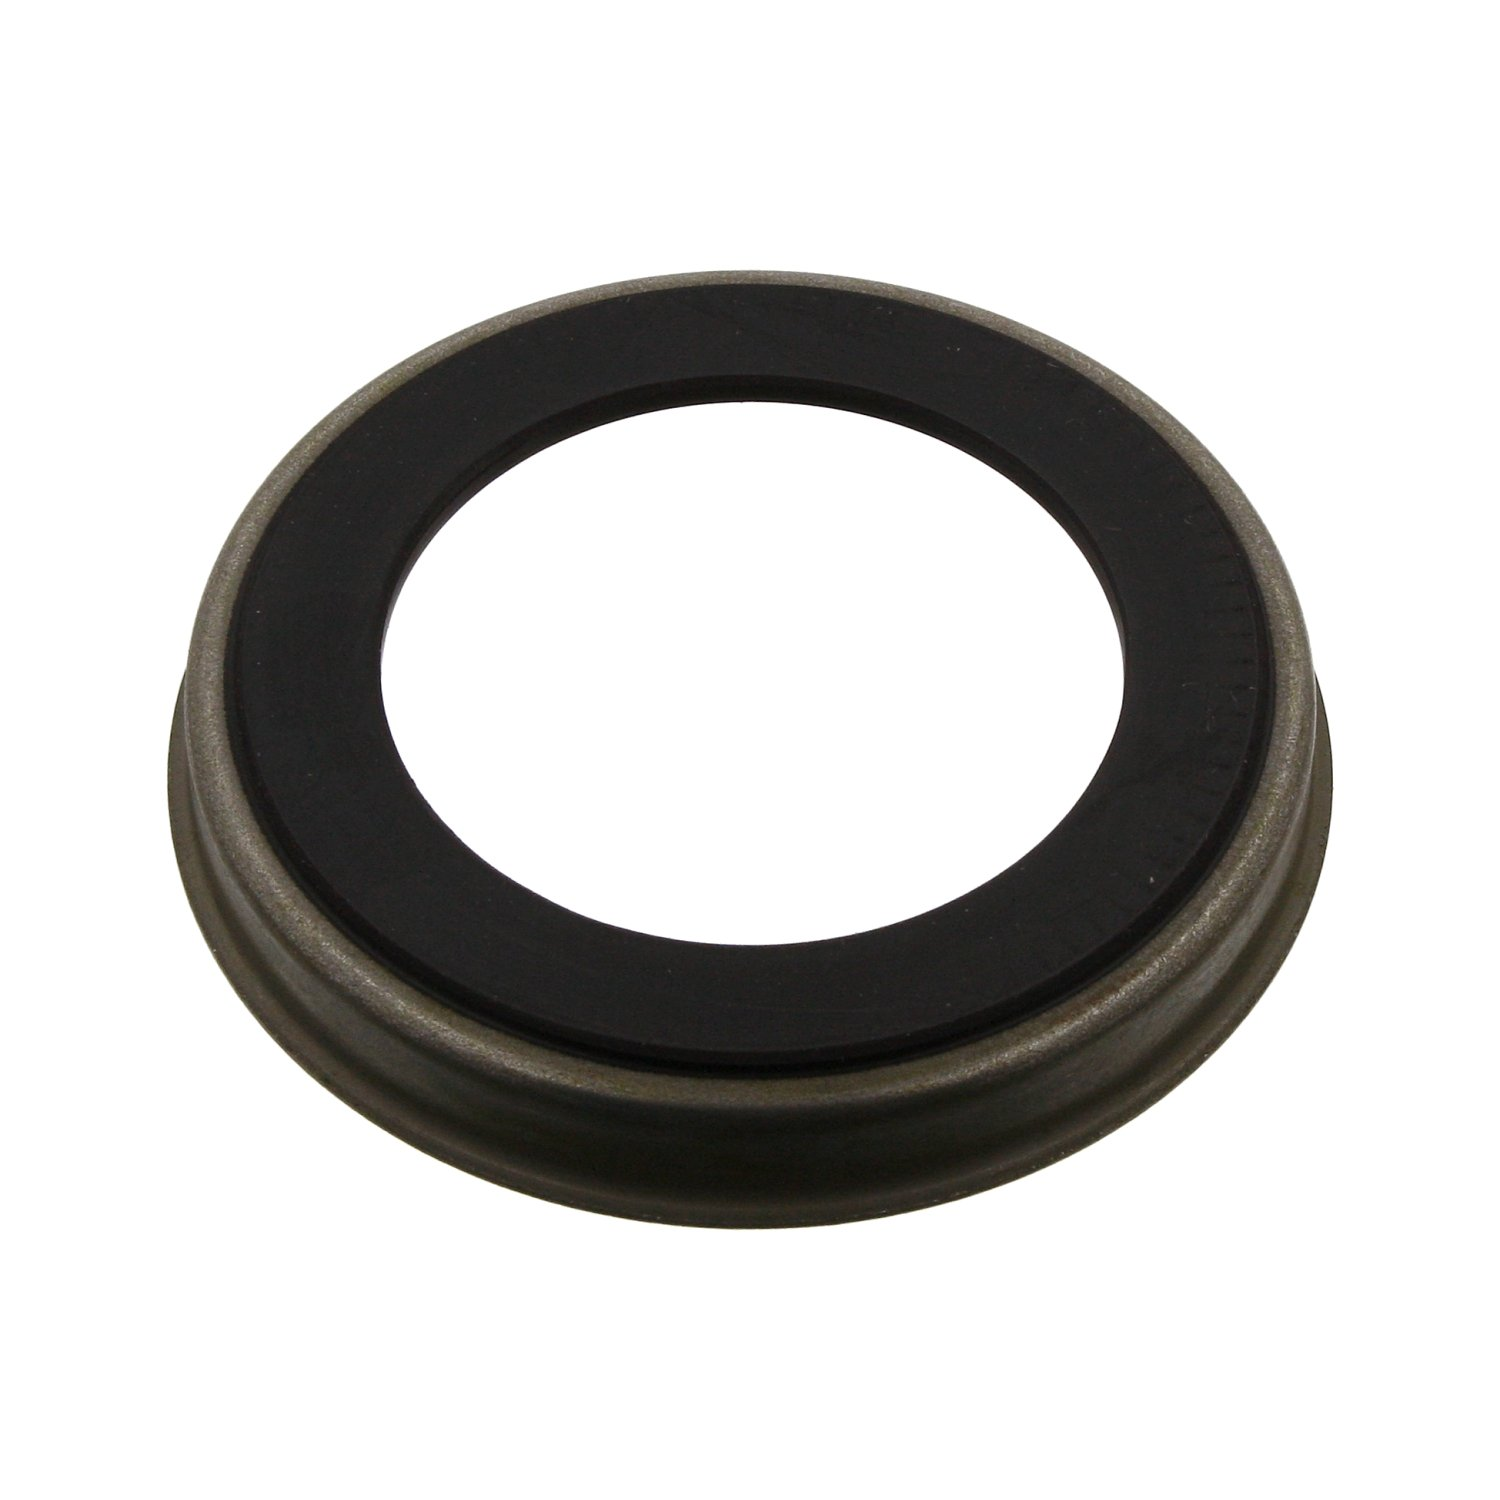 febi bilstein 32395 ABS ring (rear axle both sides) - Pack of 1